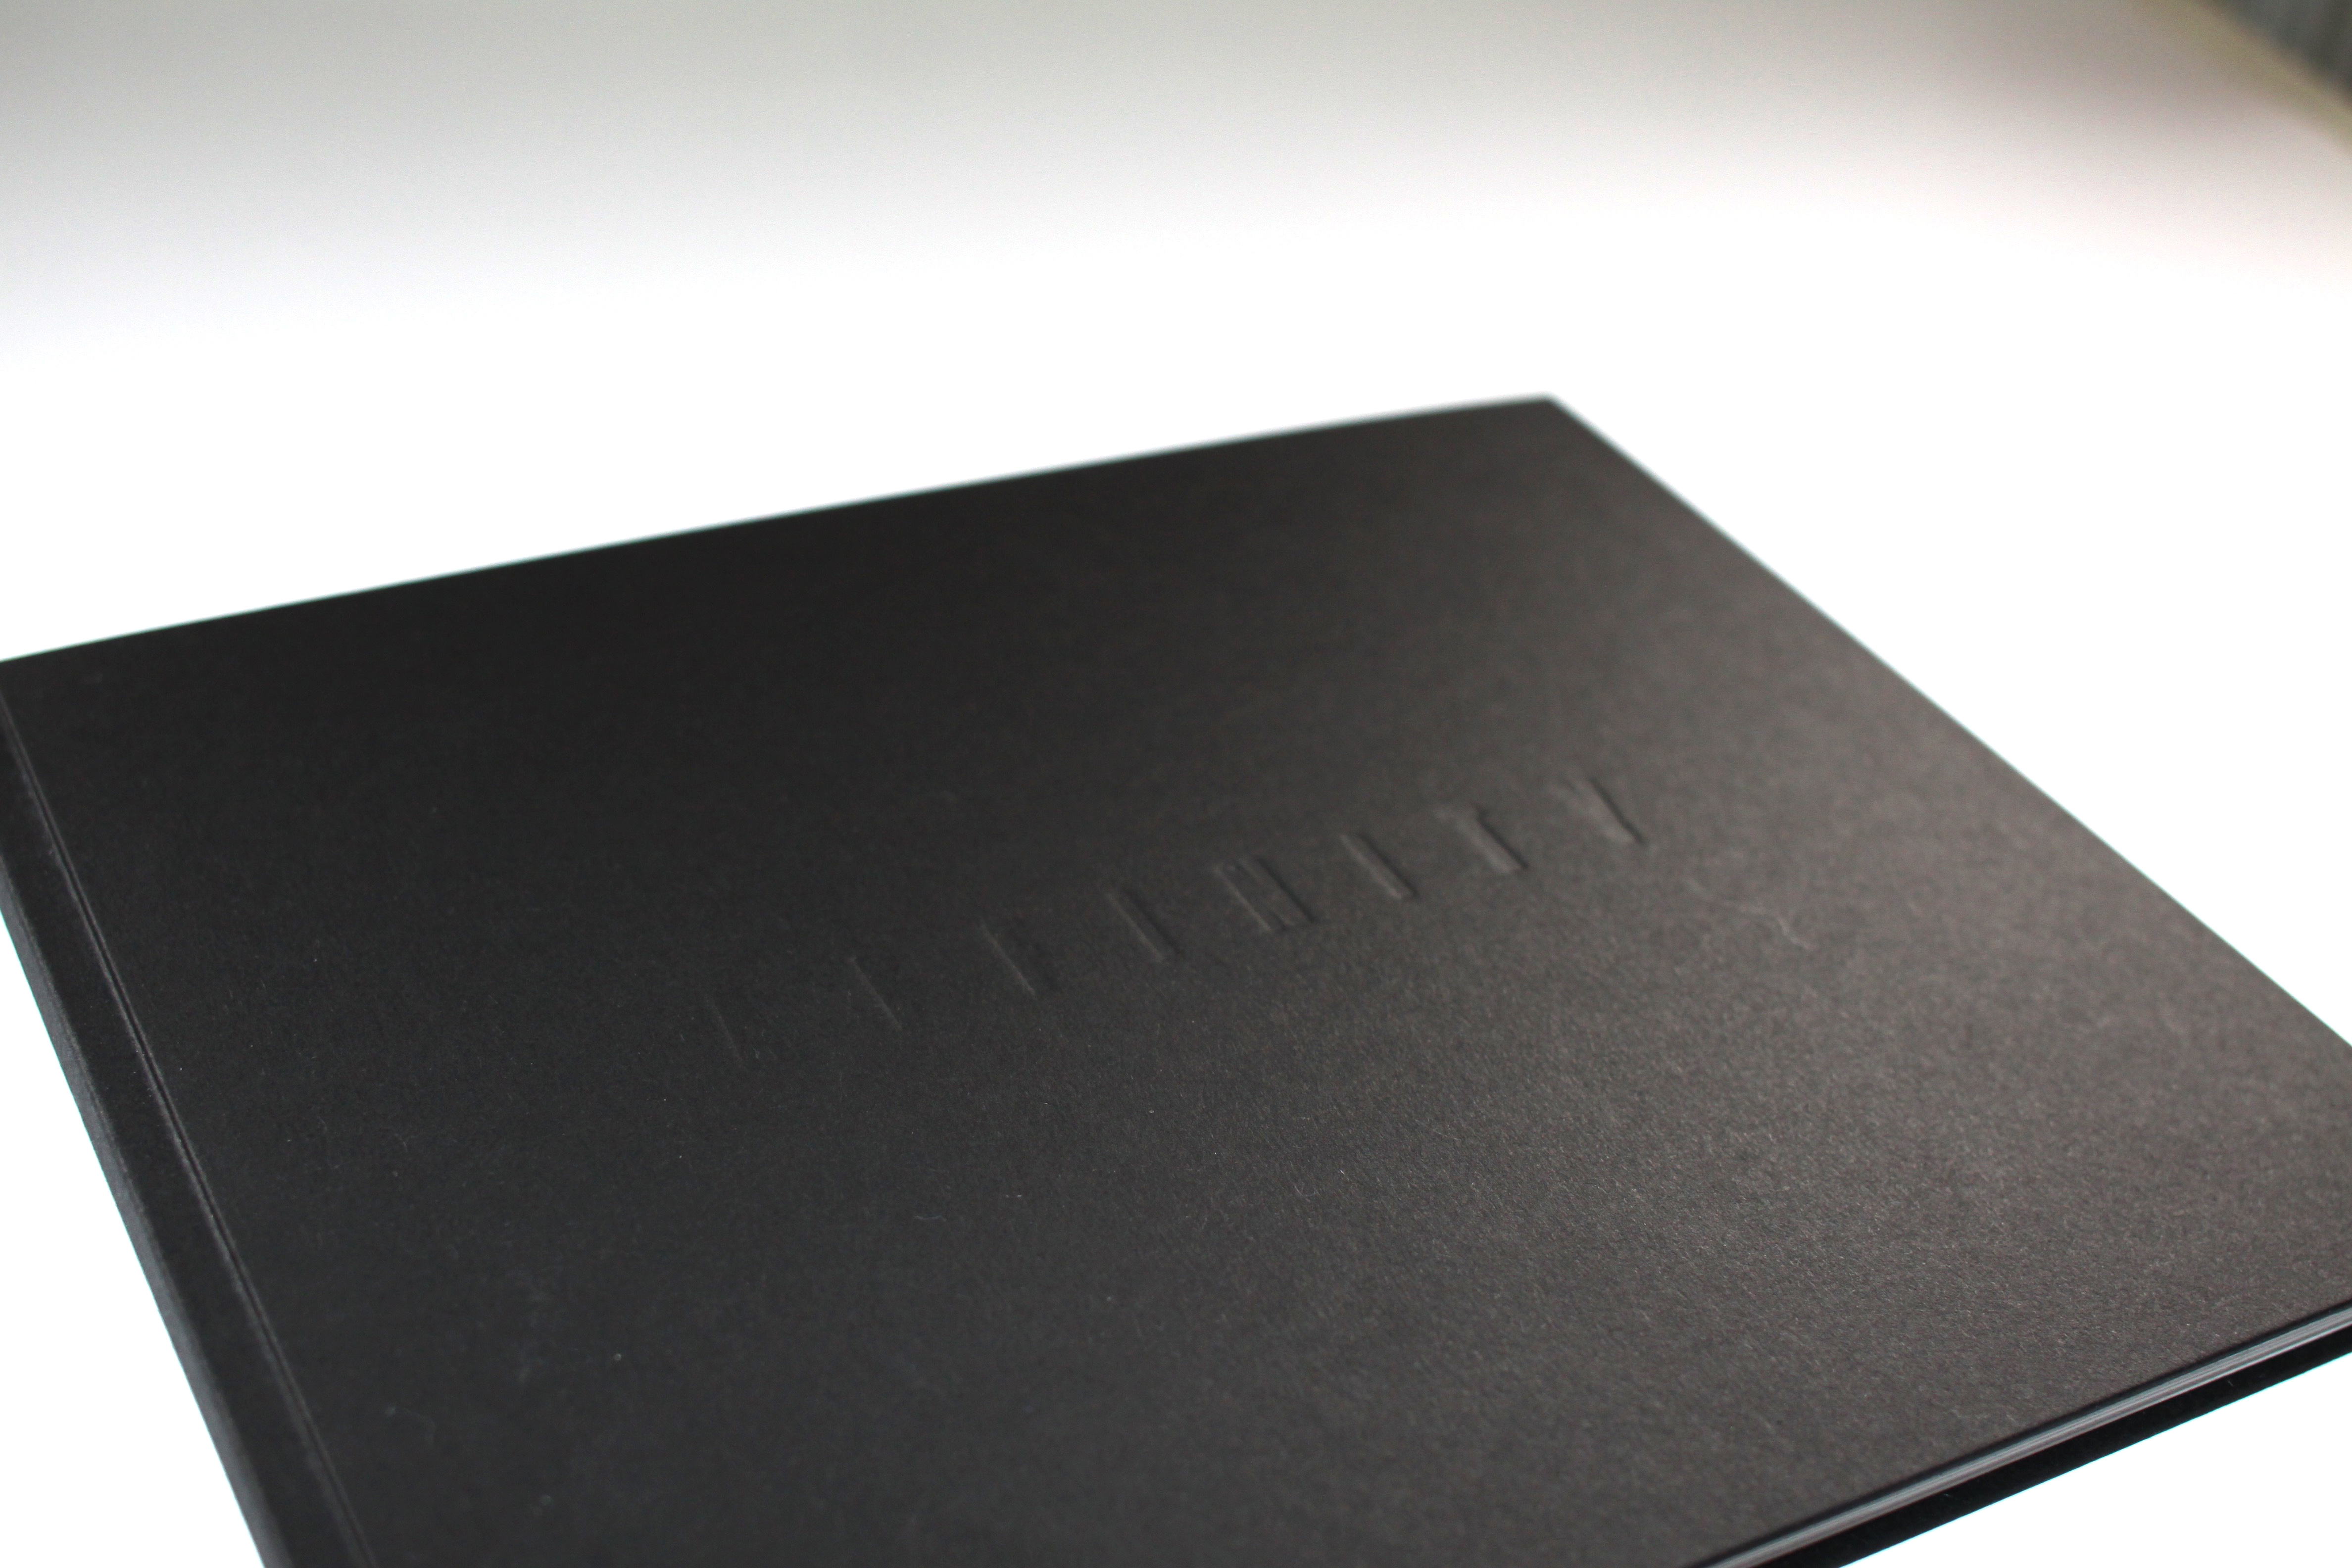 Affinity book